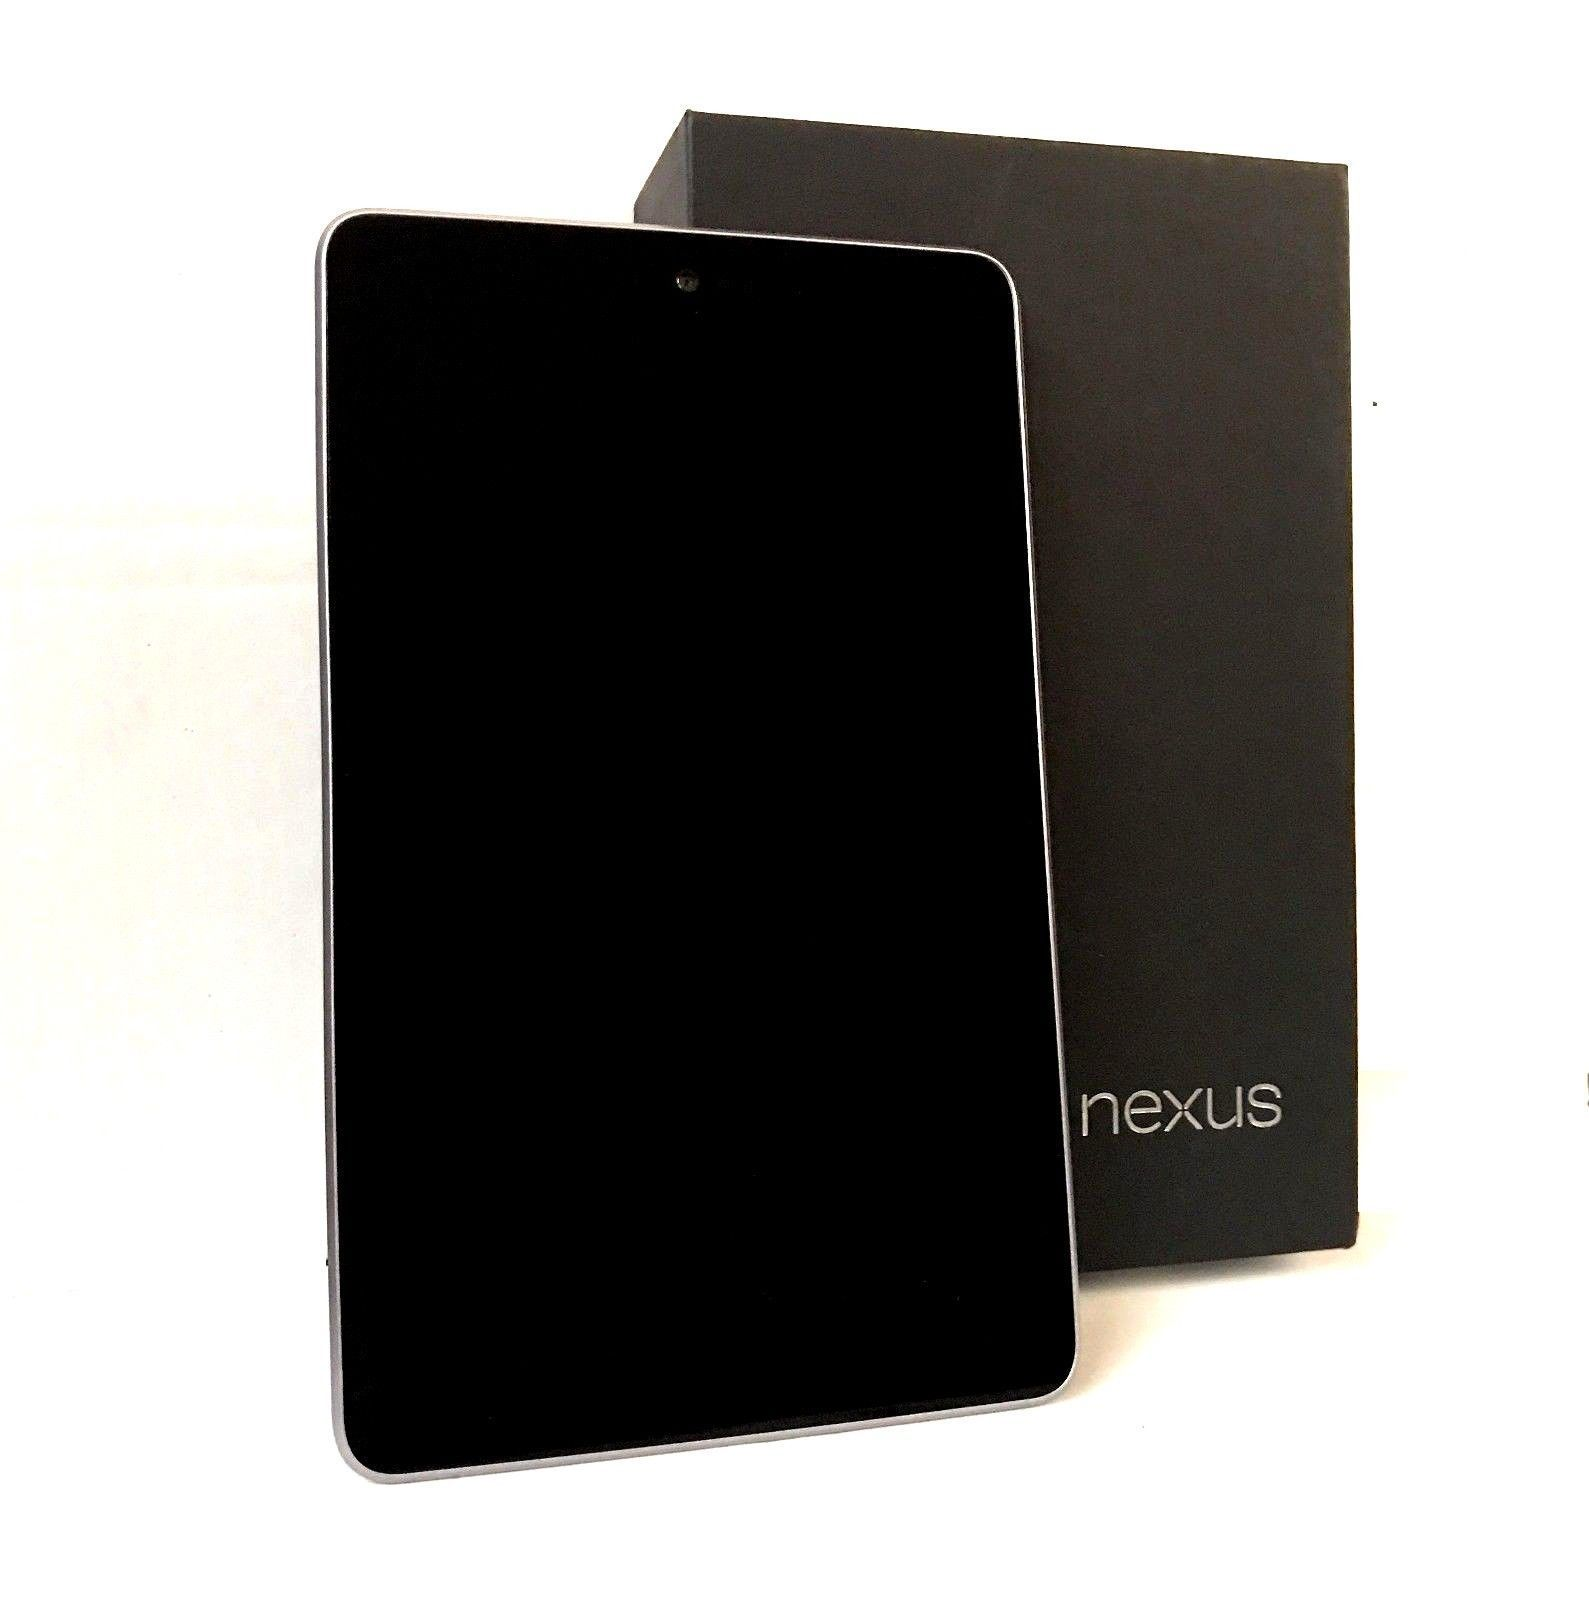 asus nexus 7 zoll 32 gb tablet PC 1GB Android 5.1.1 Touchscreen WIFI Tablet ASUS